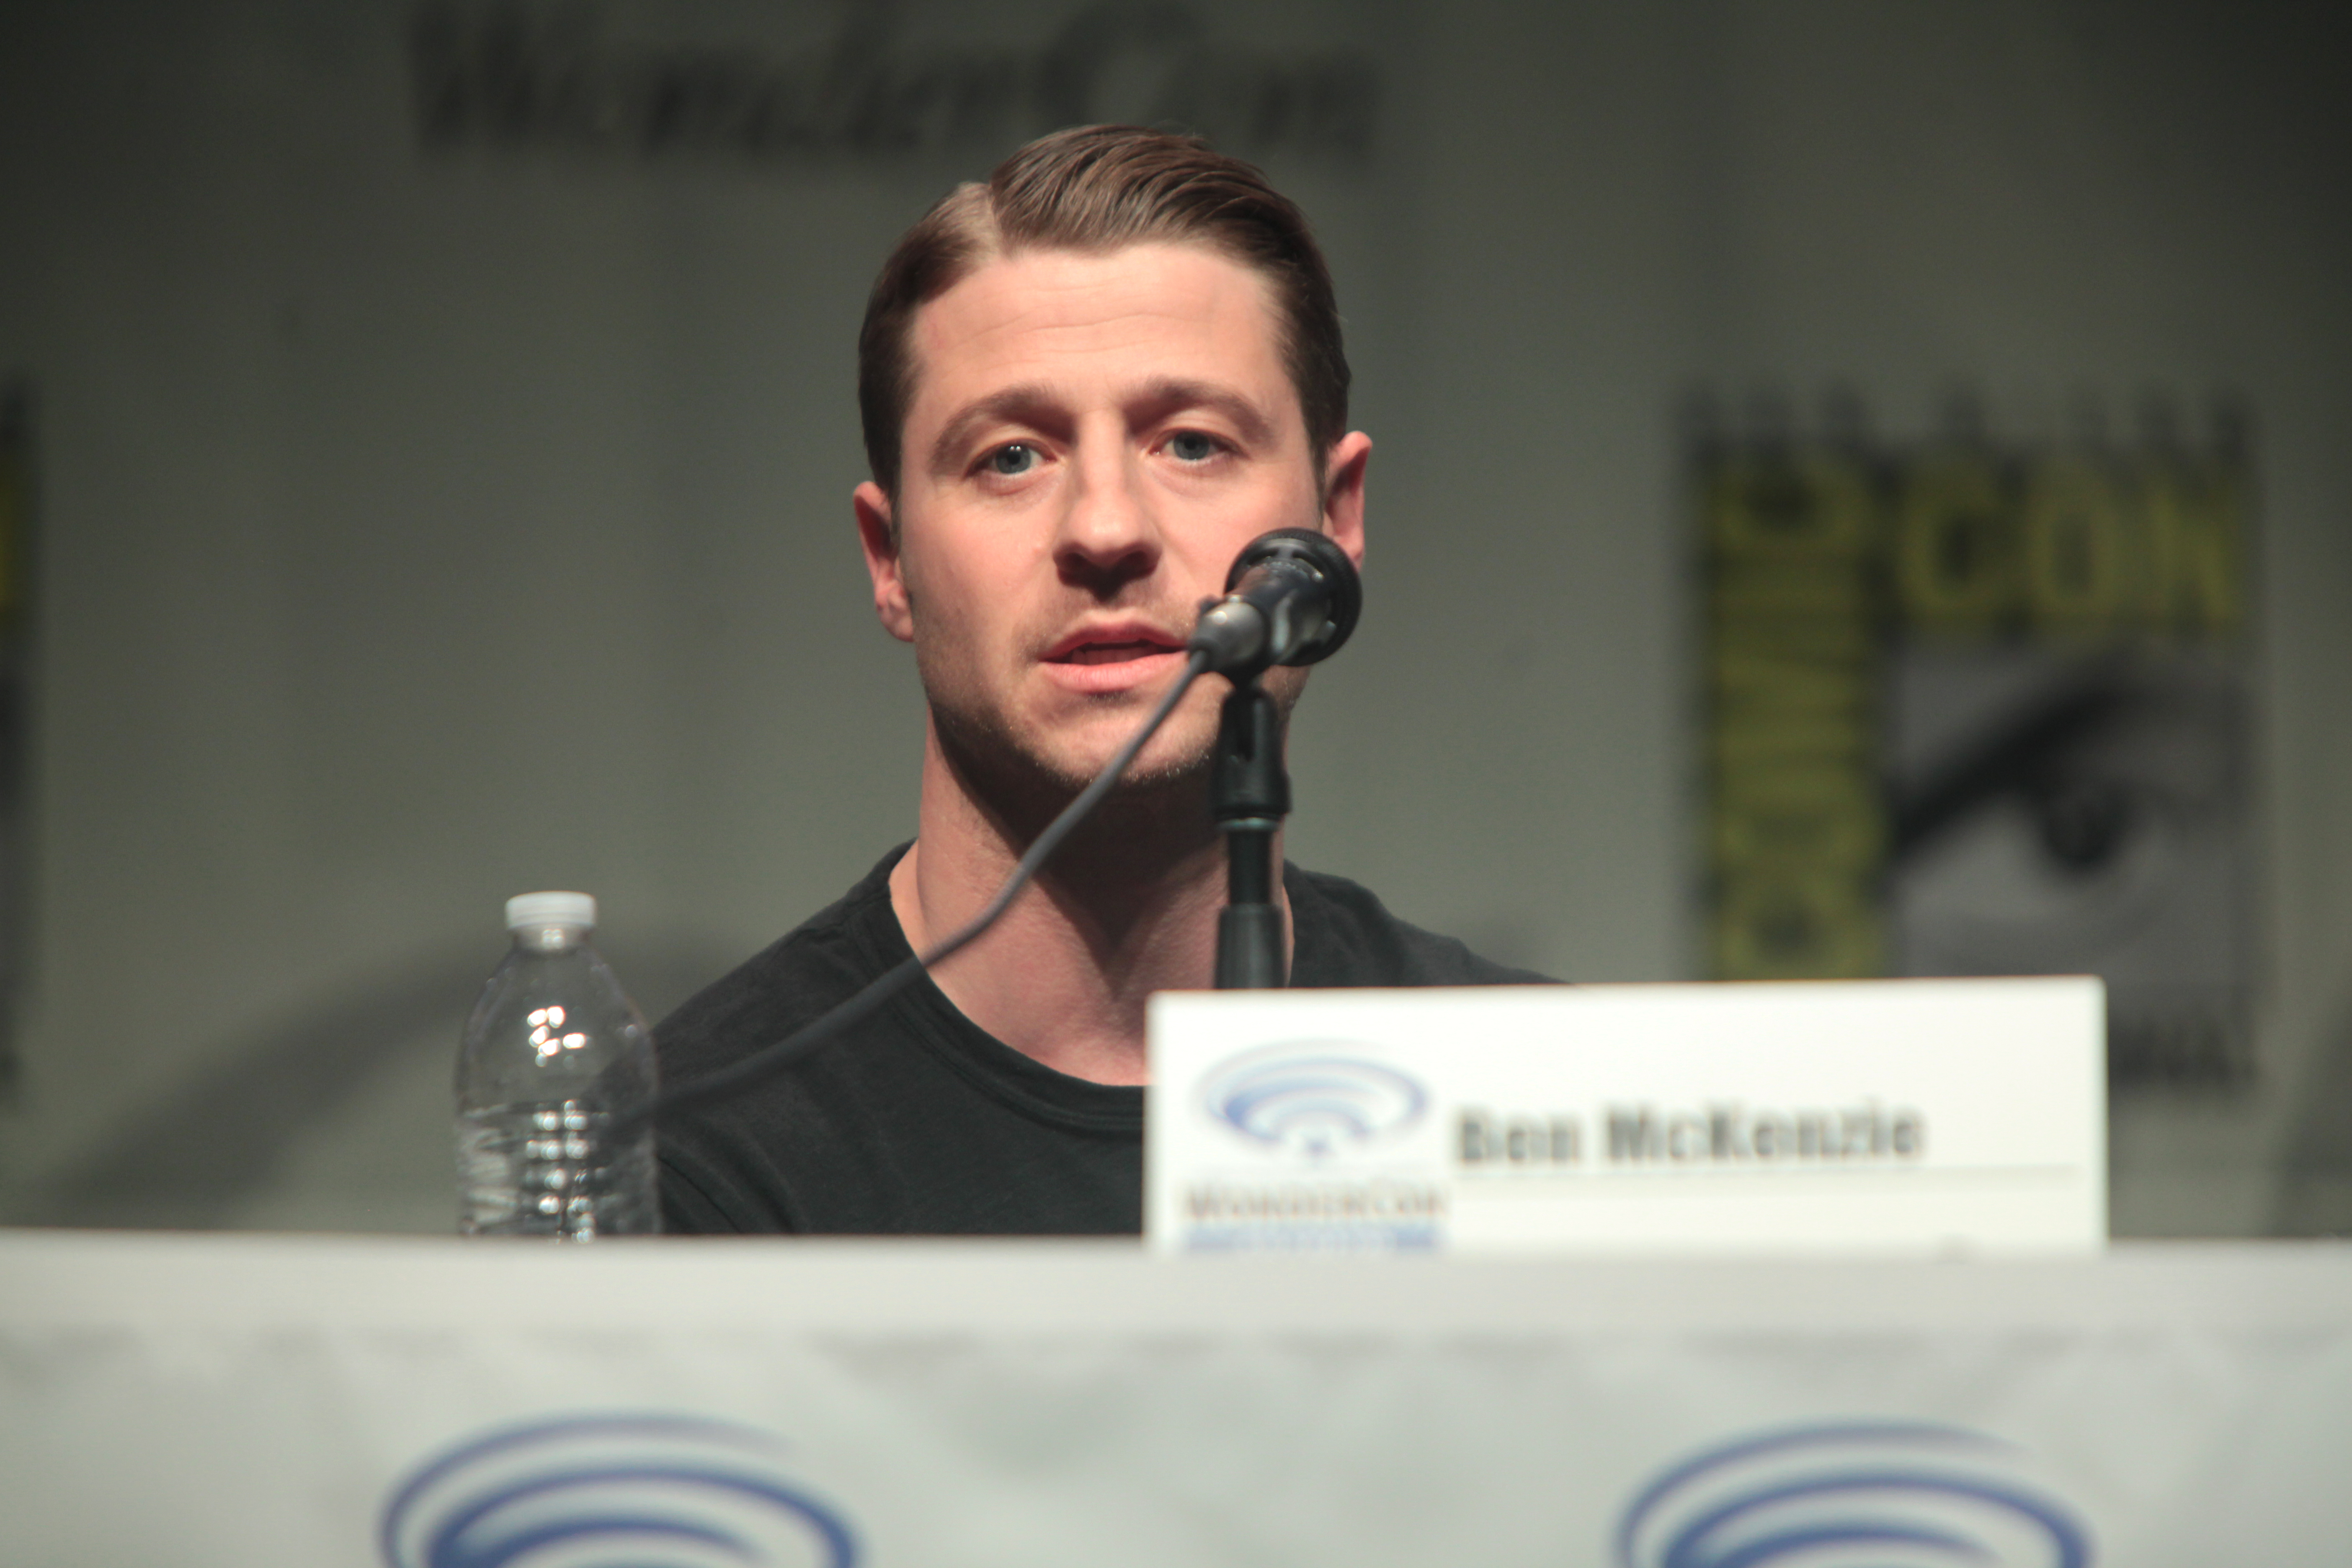 The 40-year old son of father Pieter Meade Schenkkan and mother Mary Frances Victory  Ben McKenzie in 2018 photo. Ben McKenzie earned a  million dollar salary - leaving the net worth at 13 million in 2018